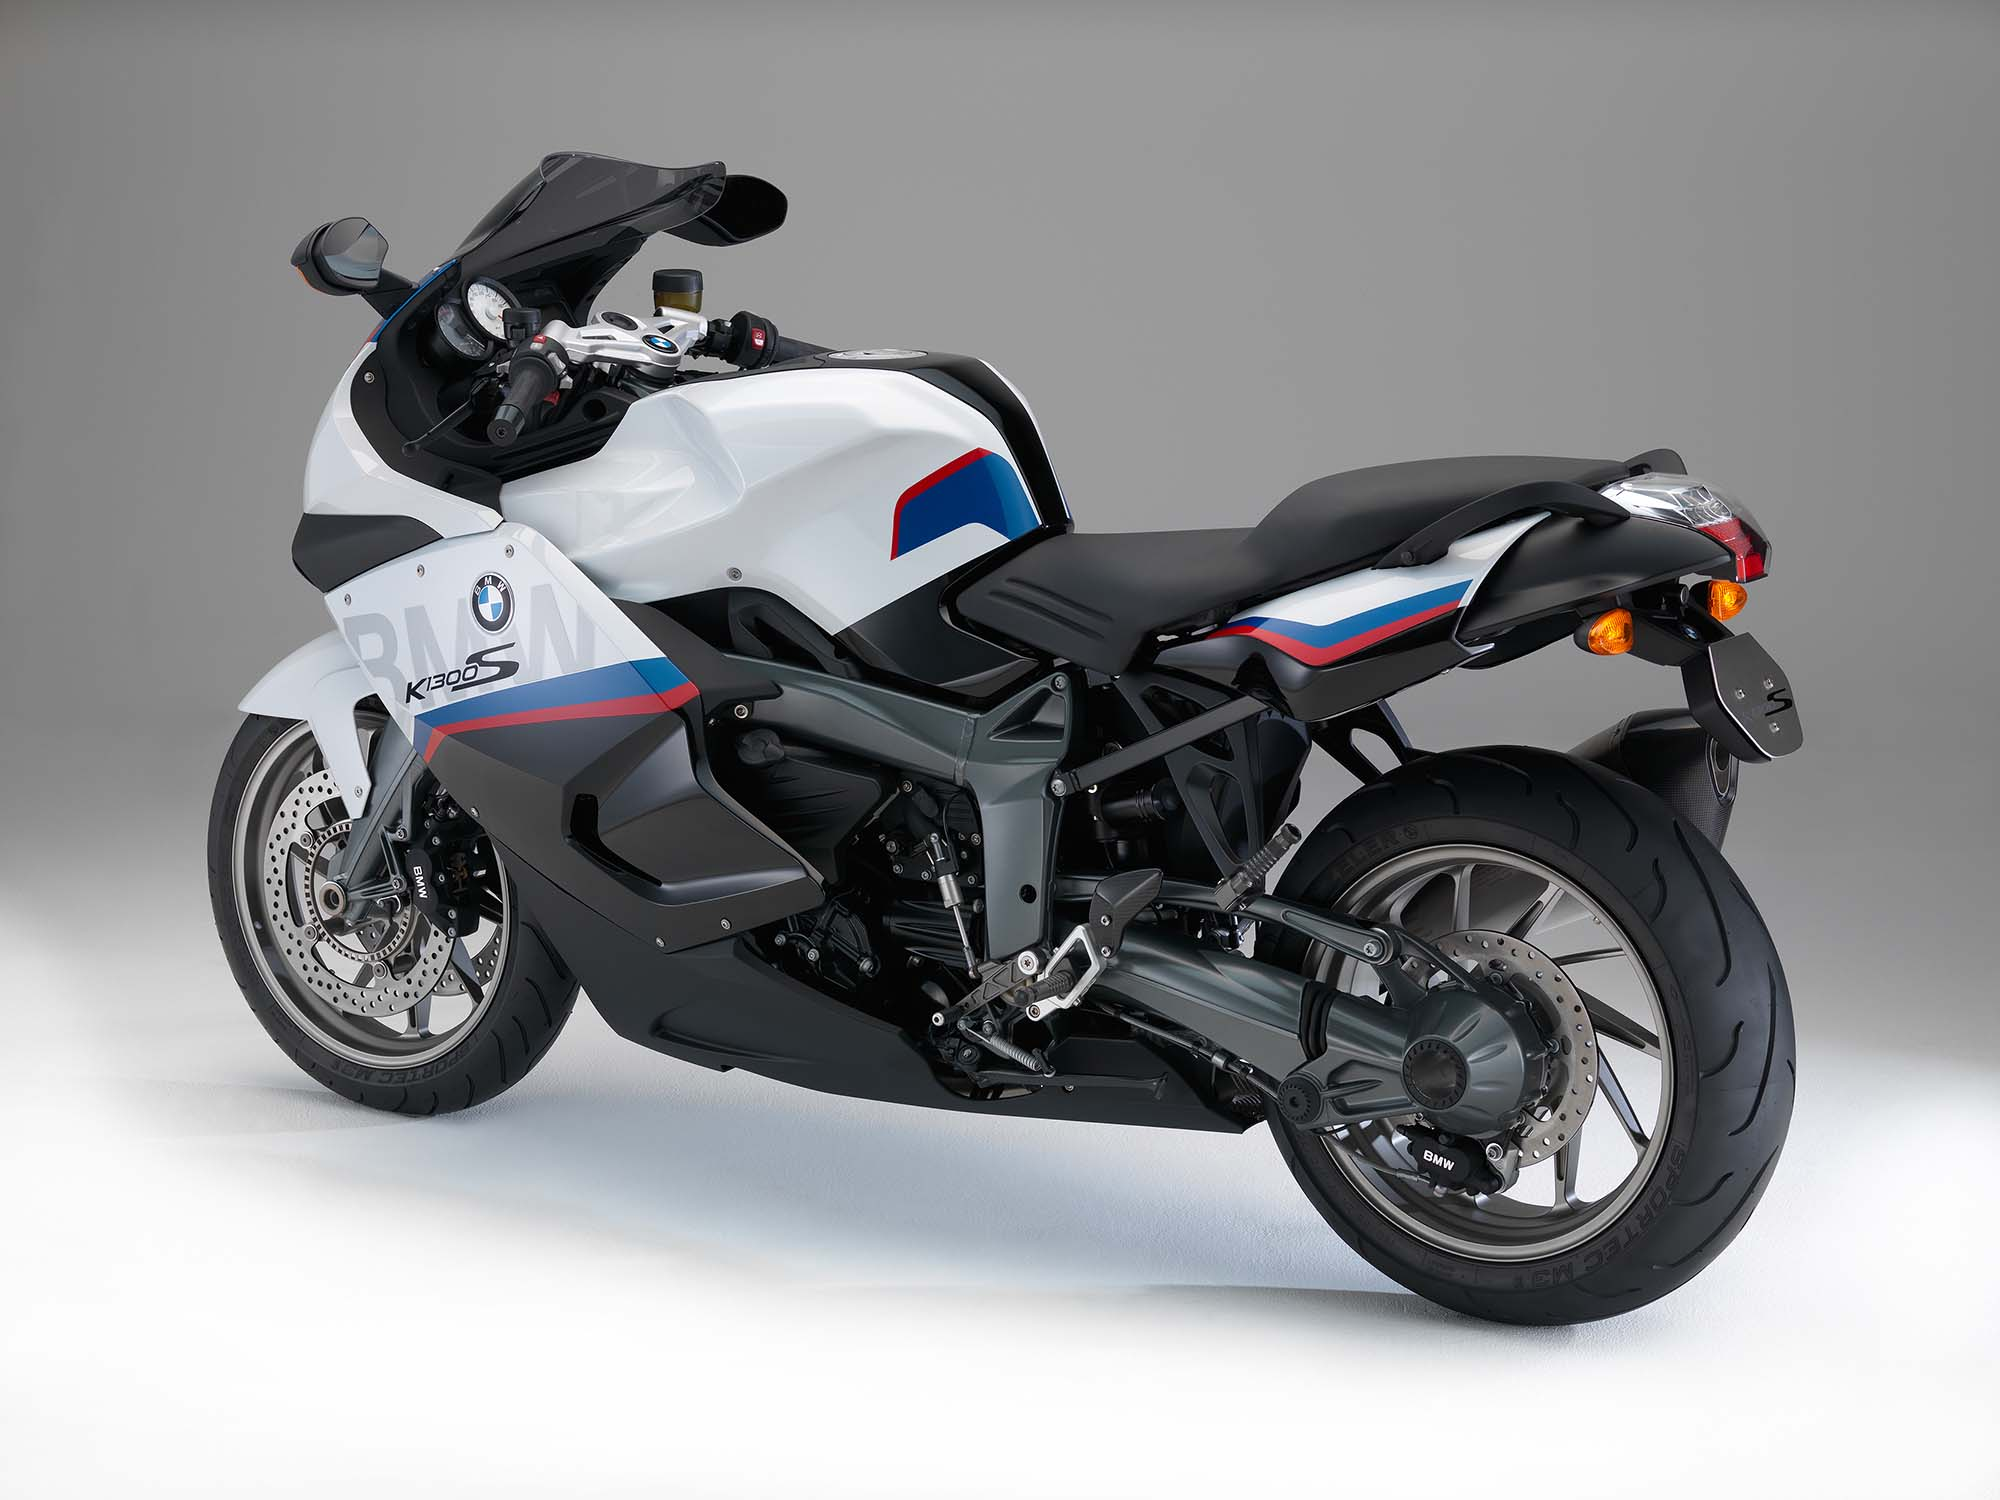 2015 BMW K1300S Motorsport - A Swan Song? - Asphalt & Rubber